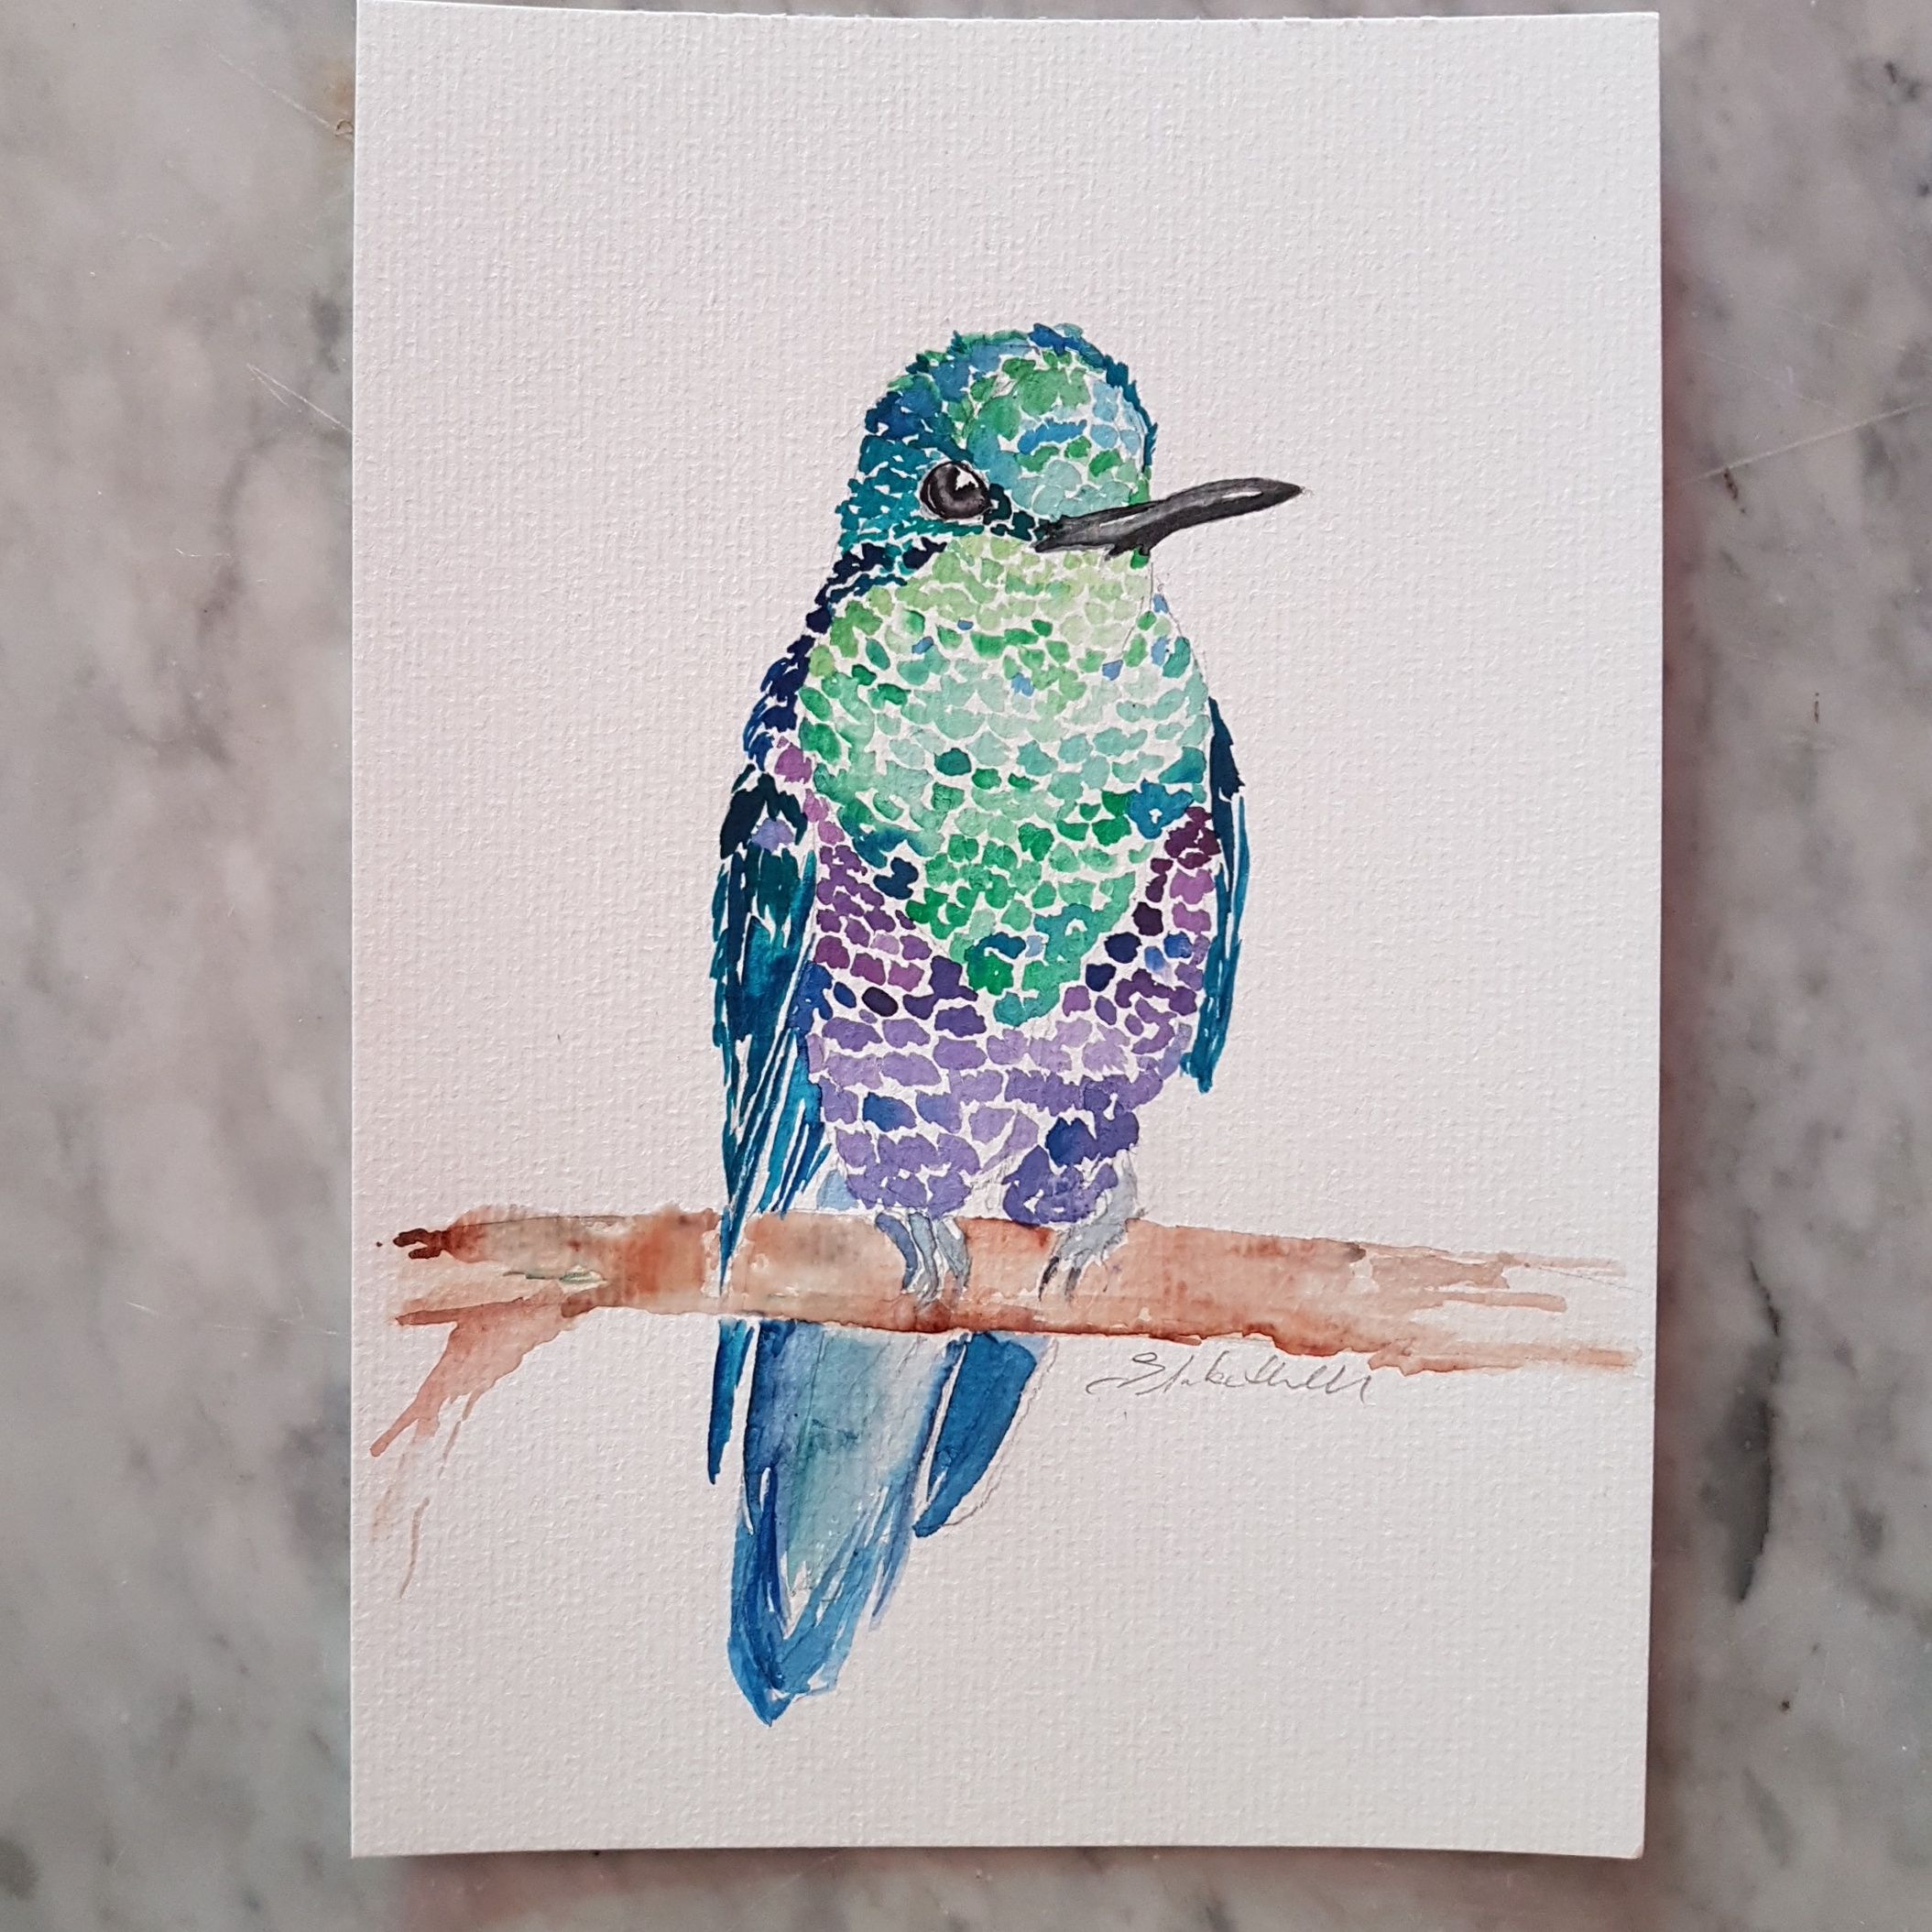 Hummingbird by Liz H Lovell